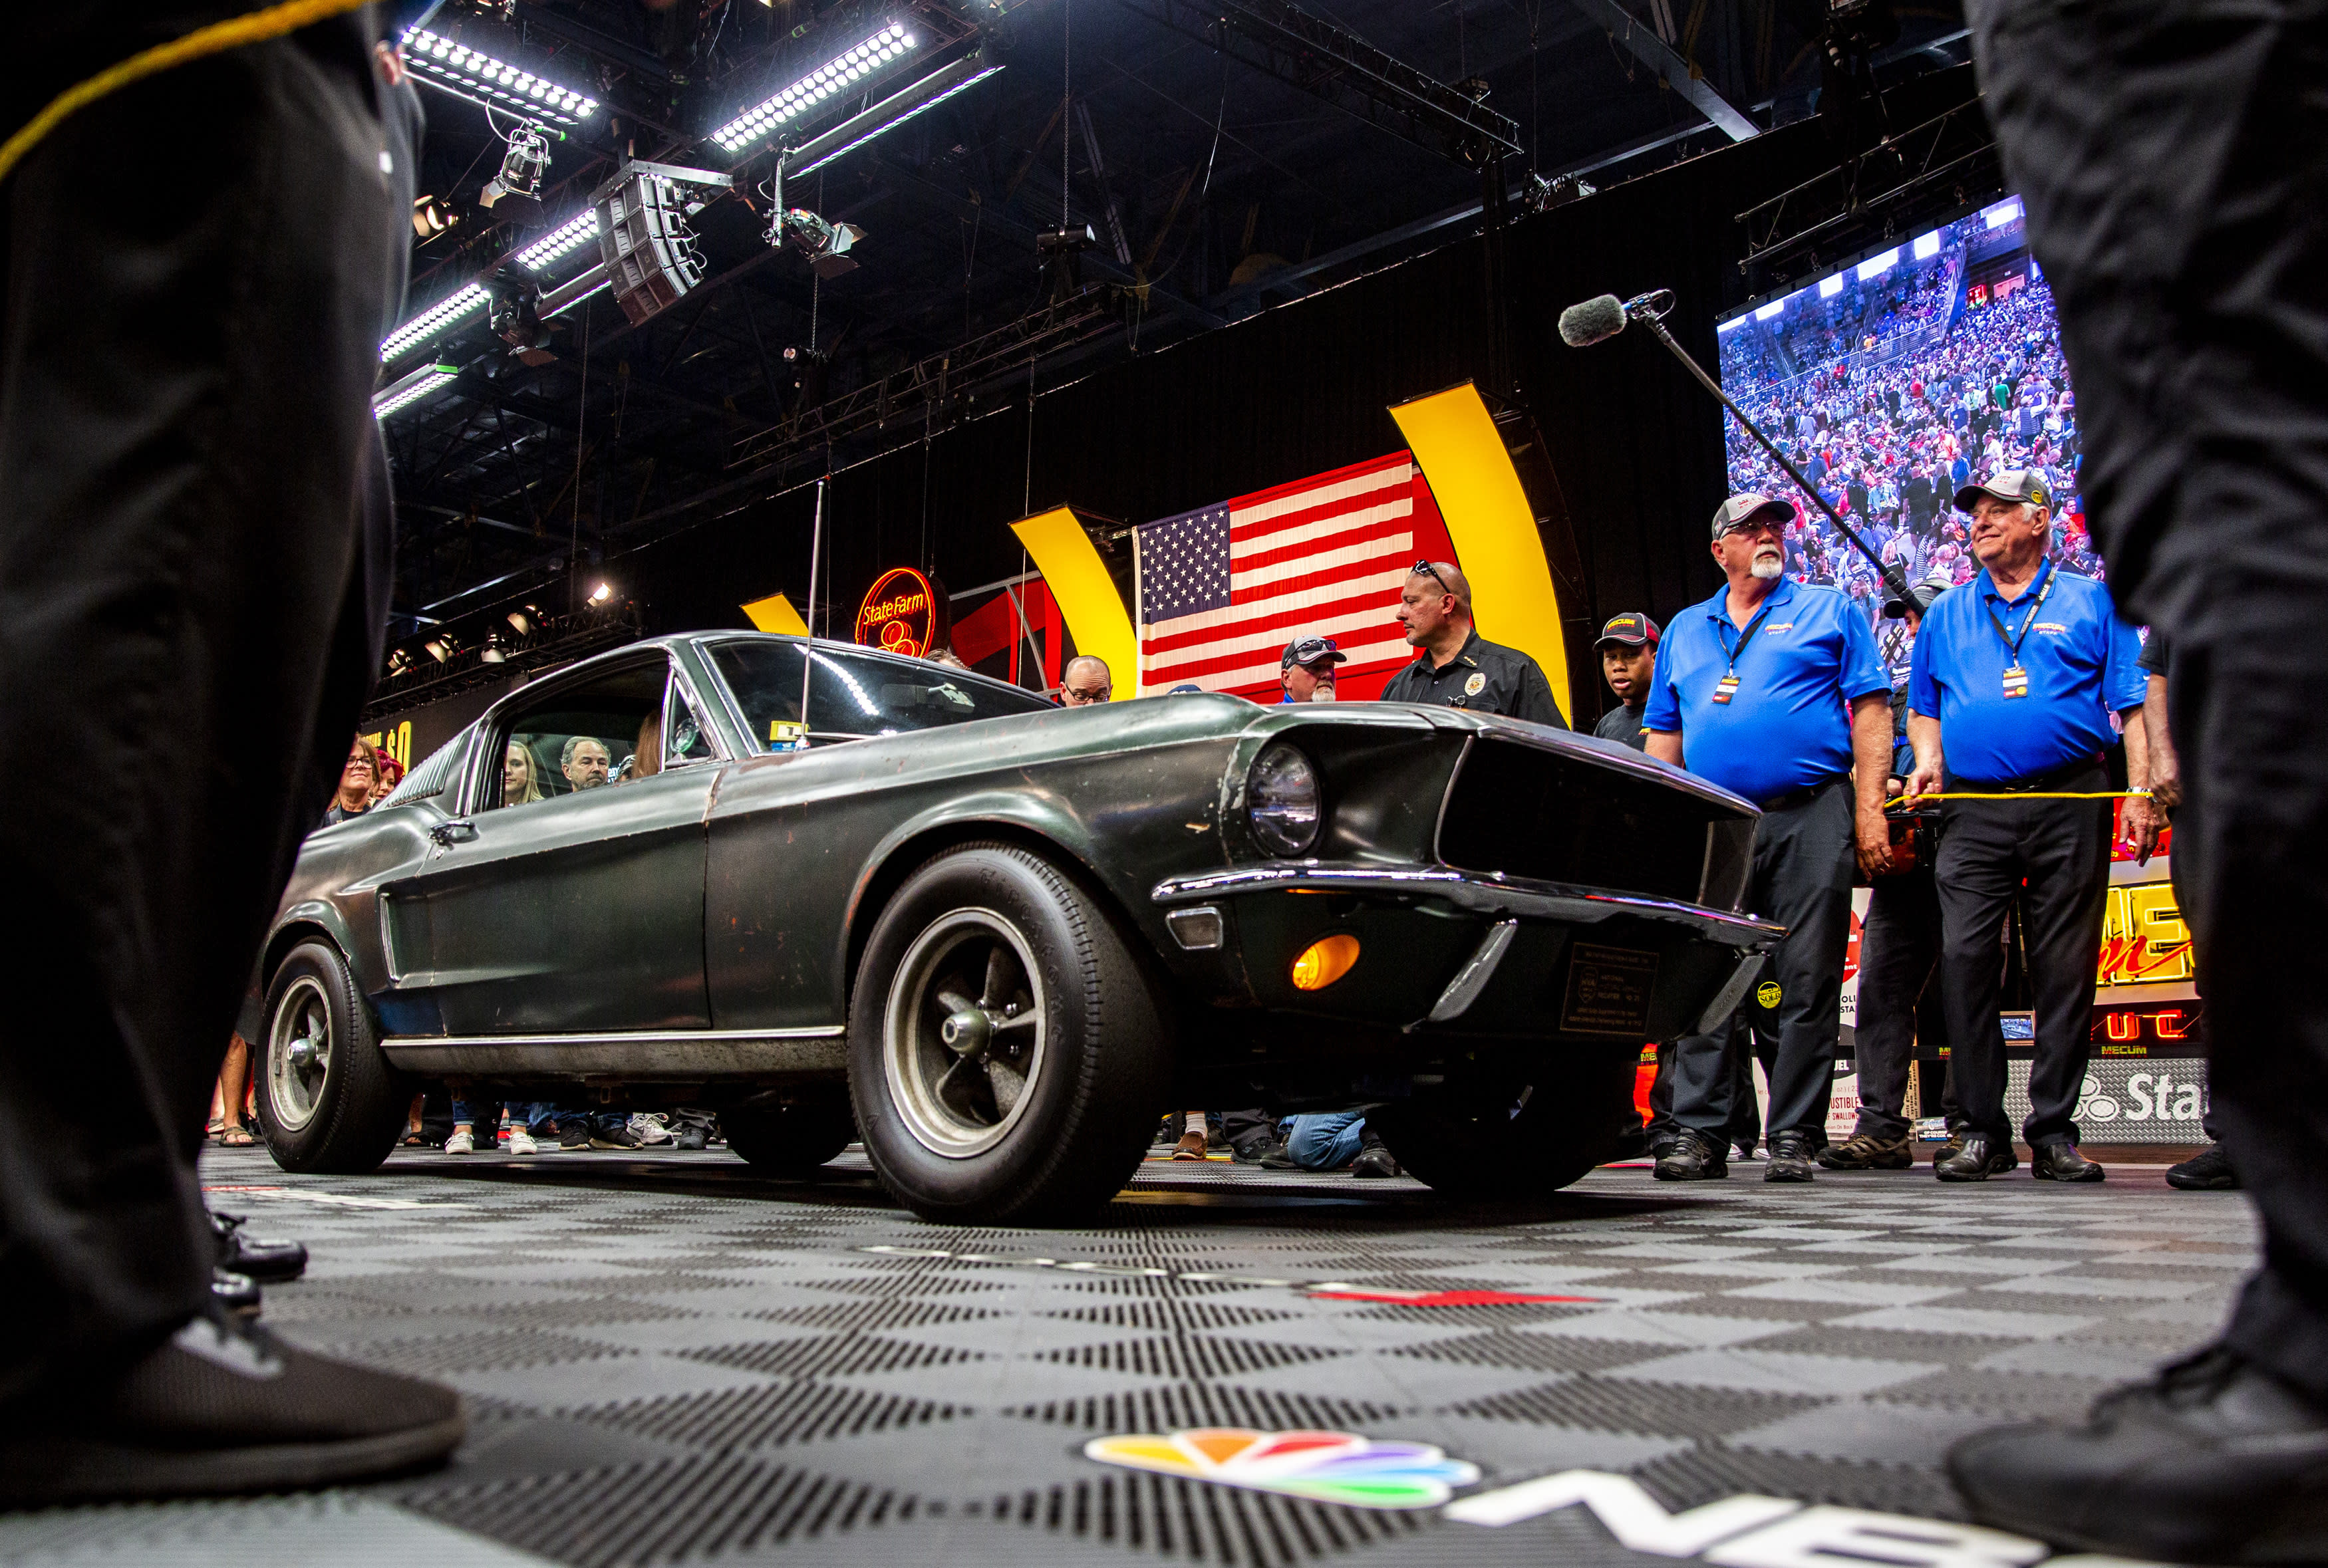 """People surround the 1968 """"Bullitt"""" Mustang GT car, Friday, Jan 10, 2020 in Kissimmee, Fla. The iconic Highland Green 1968 Mustang GT that once made history for its appearance in the film """"Bullitt"""" is now making history again. It fetched $3.74 million Friday at Mecum's Kissimmee auction, making it the most expensive Mustang ever sold. (Patrick Connolly/Orlando Sentinel via AP)"""